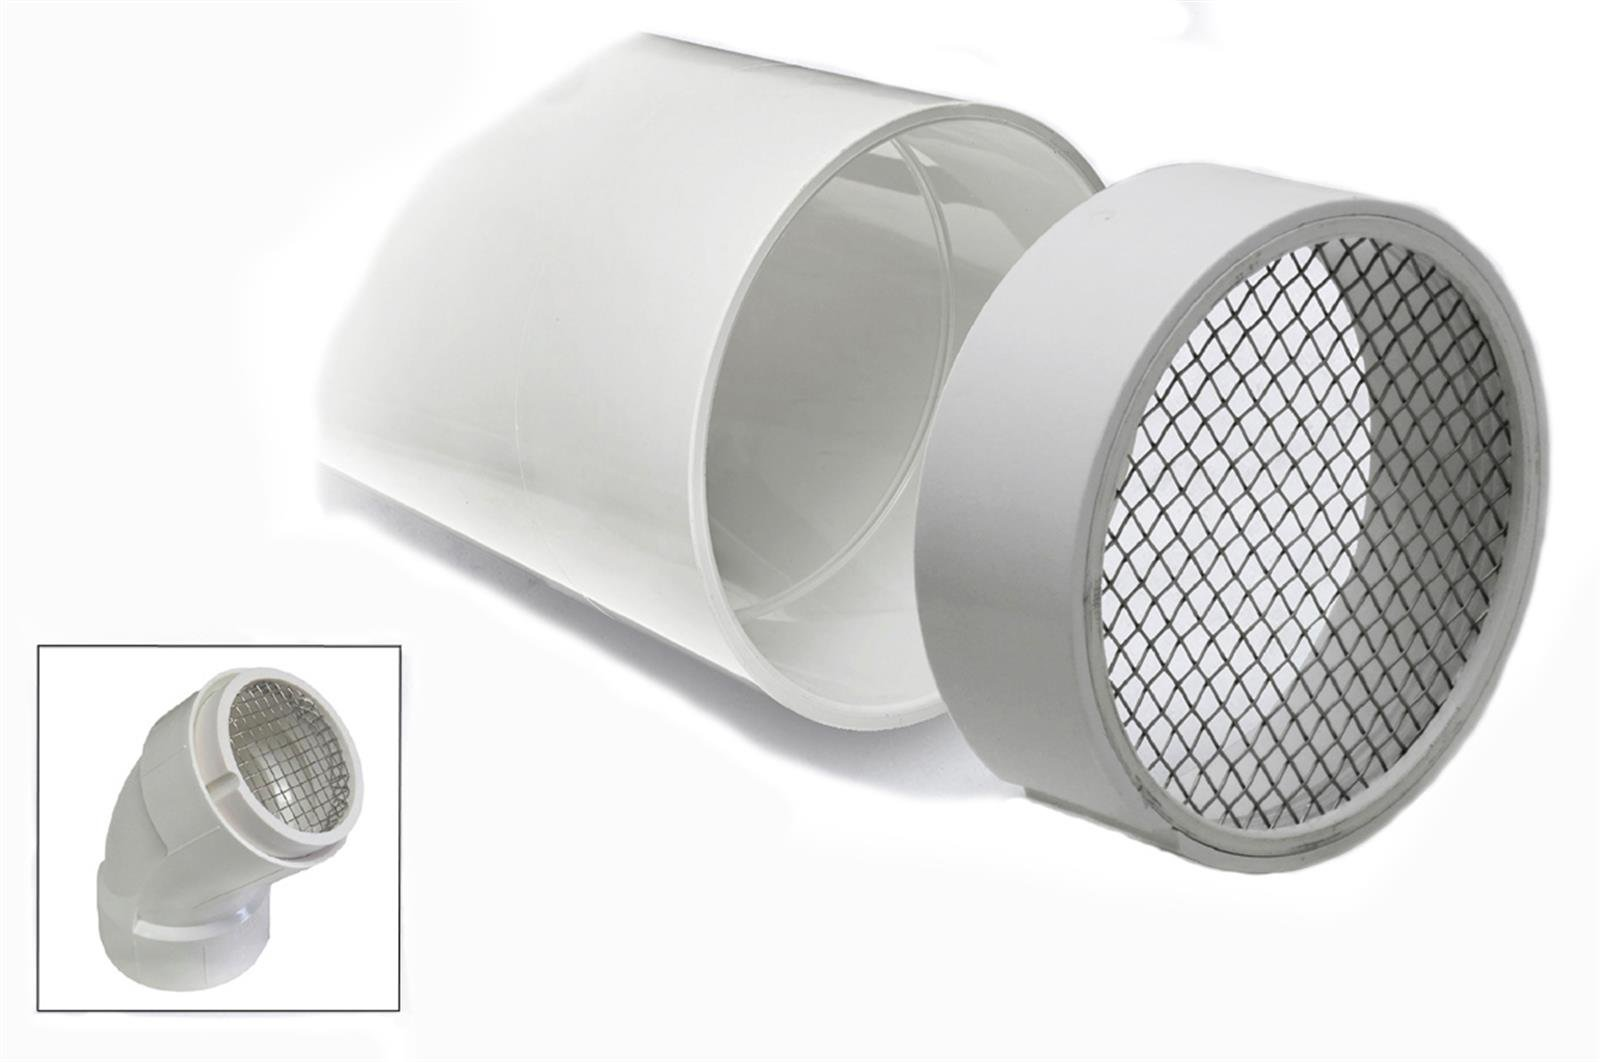 Pvc Termination Vent Screen Nixalite Pipes For Electrical Wiring Metal And Pe Compare Evaluate